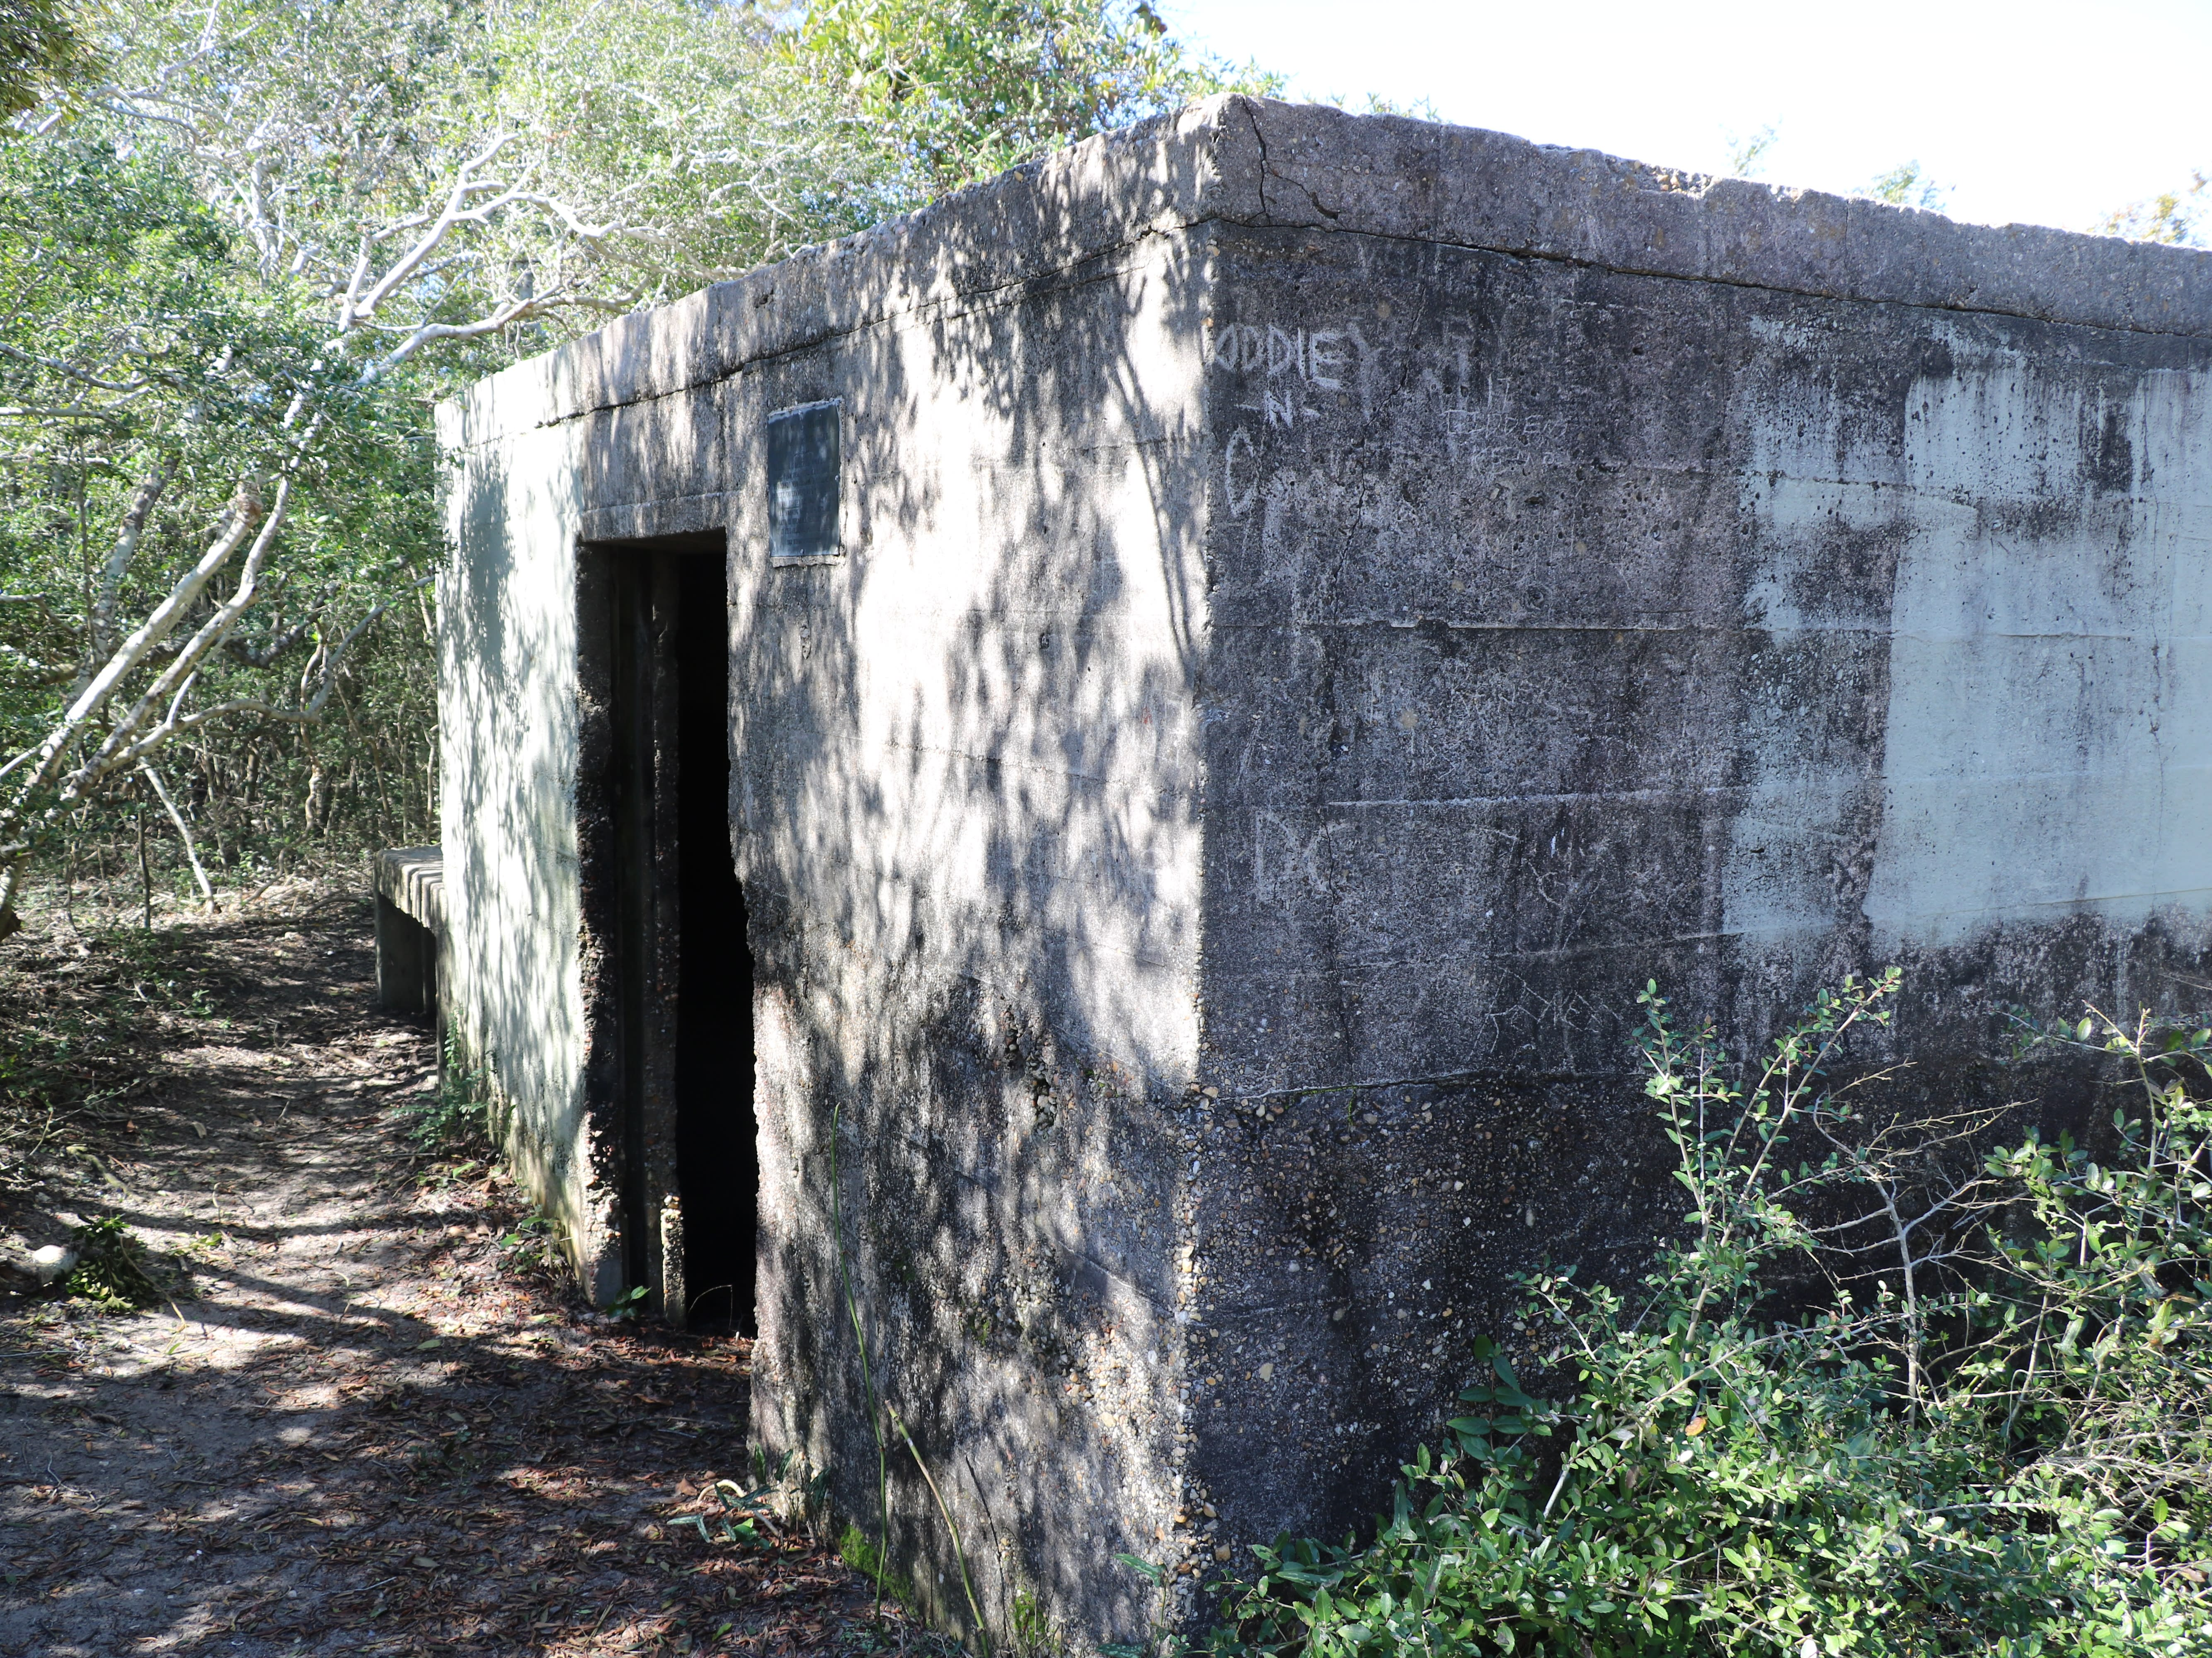 WWII Bunker on the Basin Trail